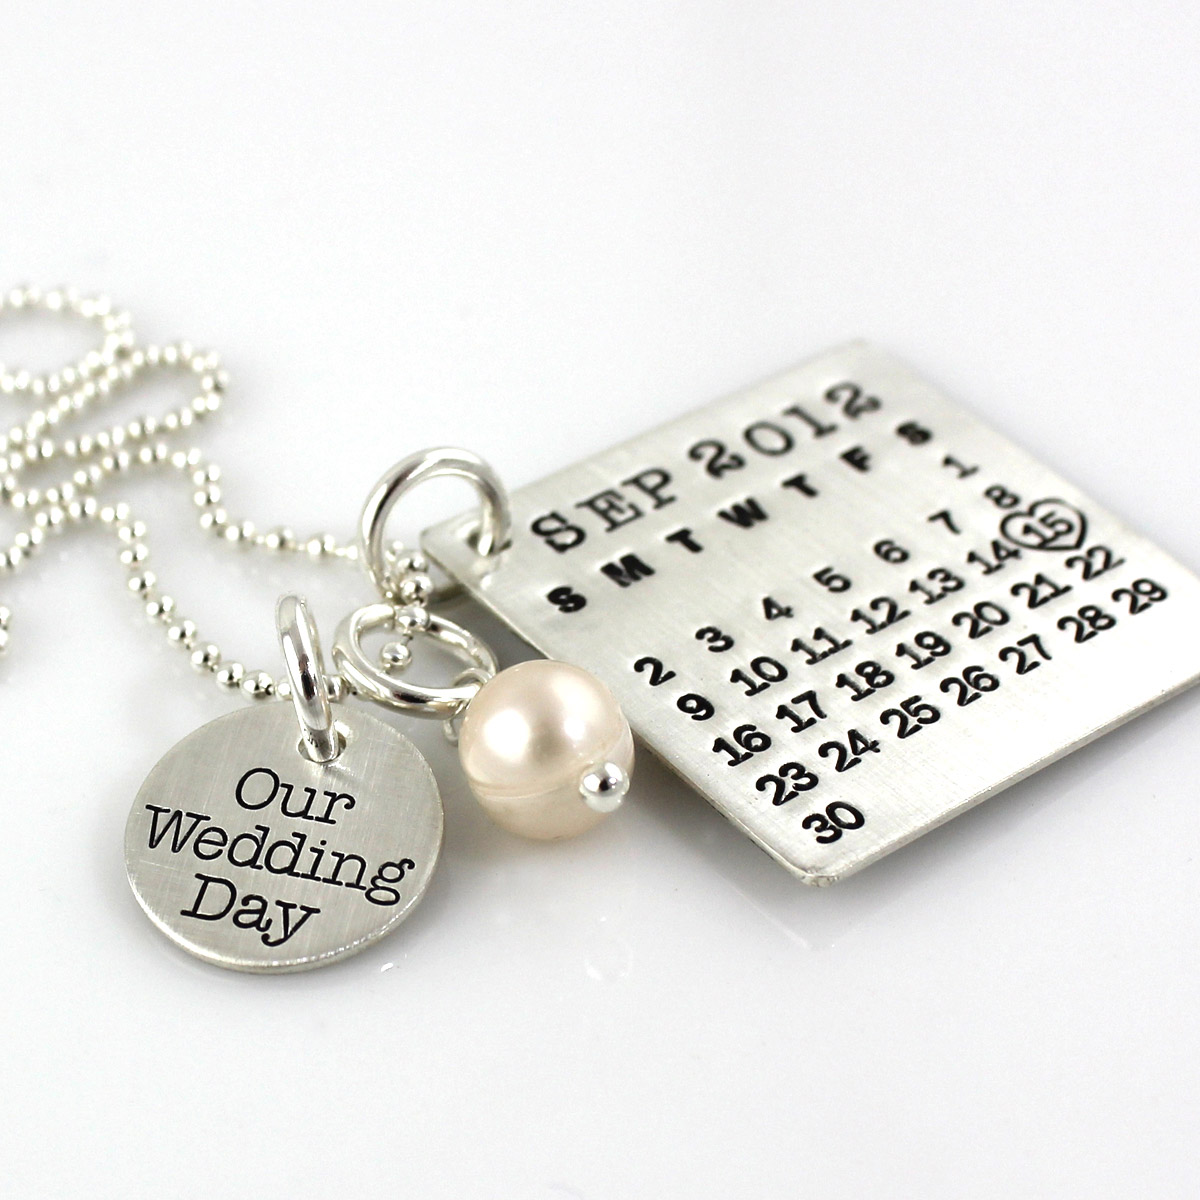 Mark Your Calendar Necklace with Our Wedding Day Charm and pearl